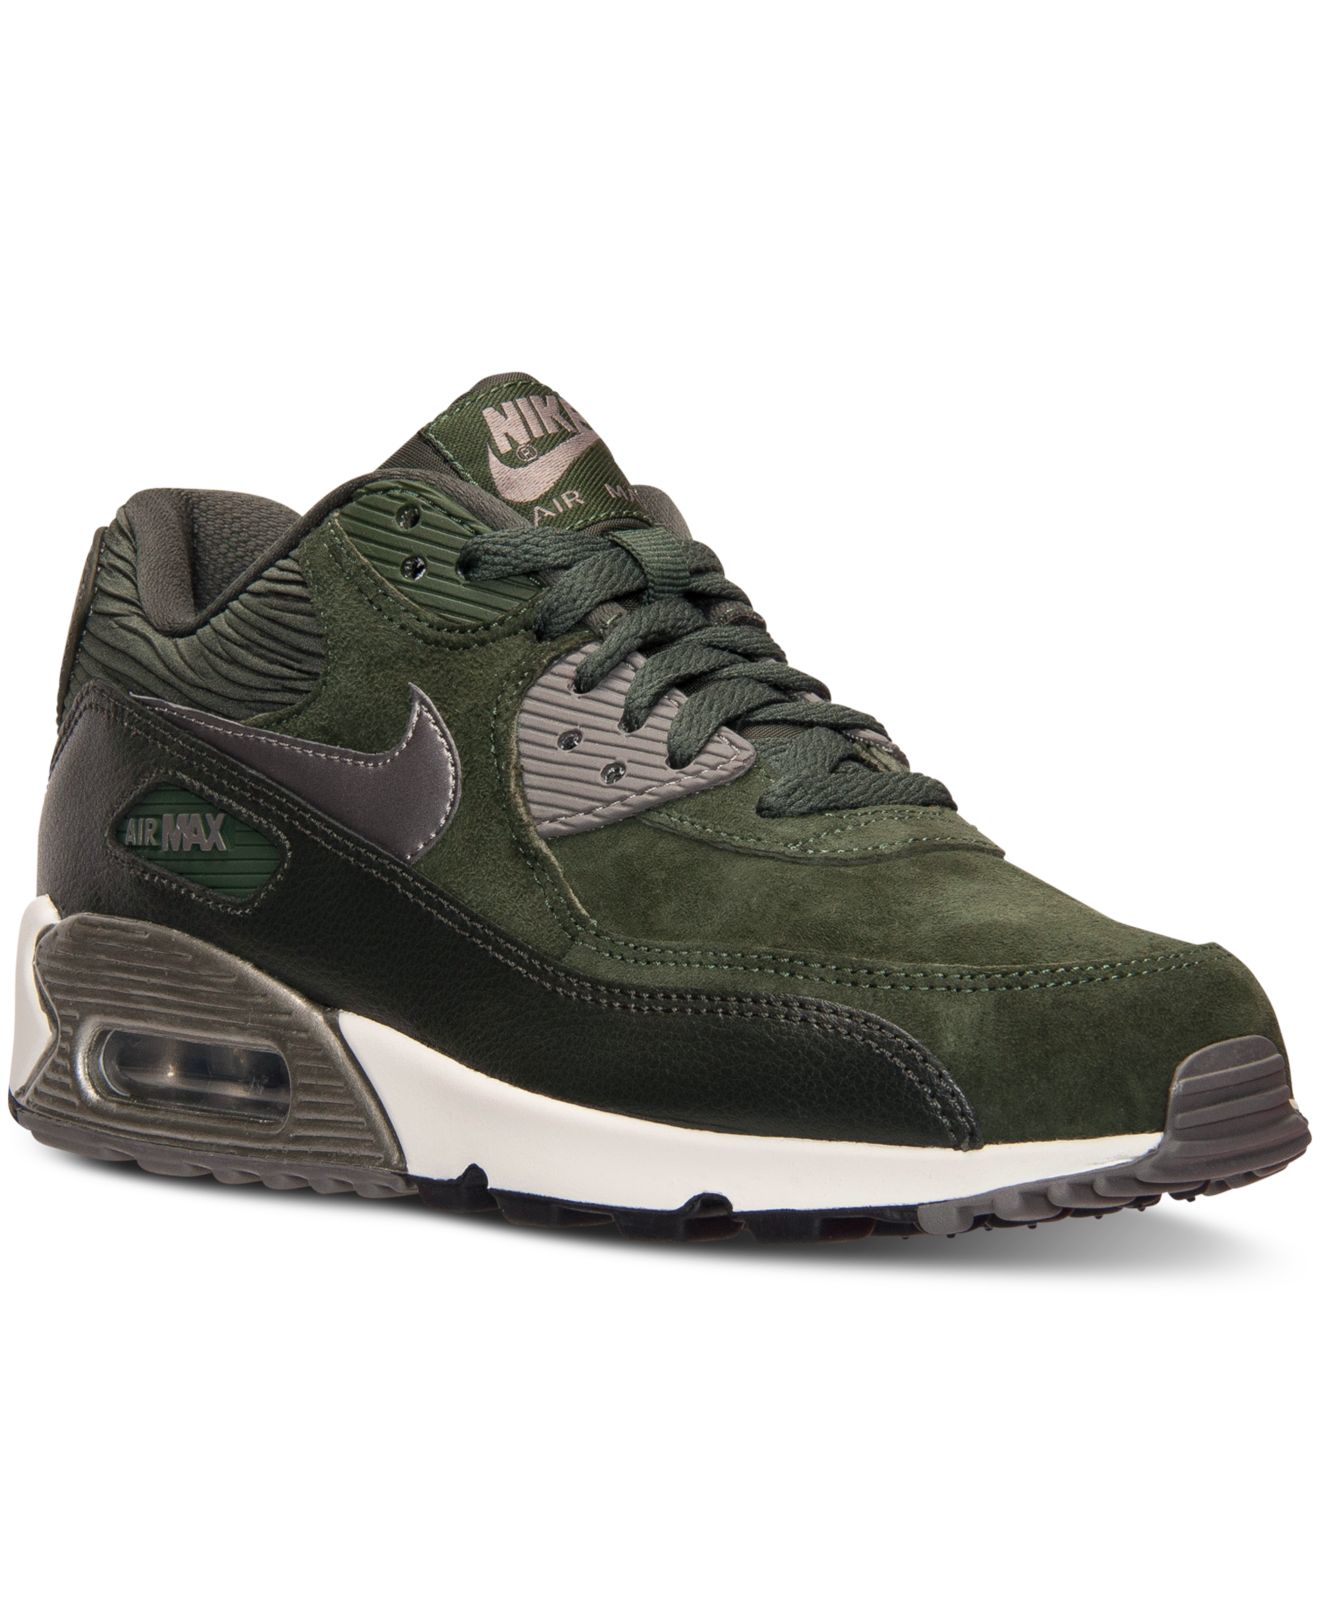 Lyst - Nike Women's Air Max 90 Leather Running Sneakers ...